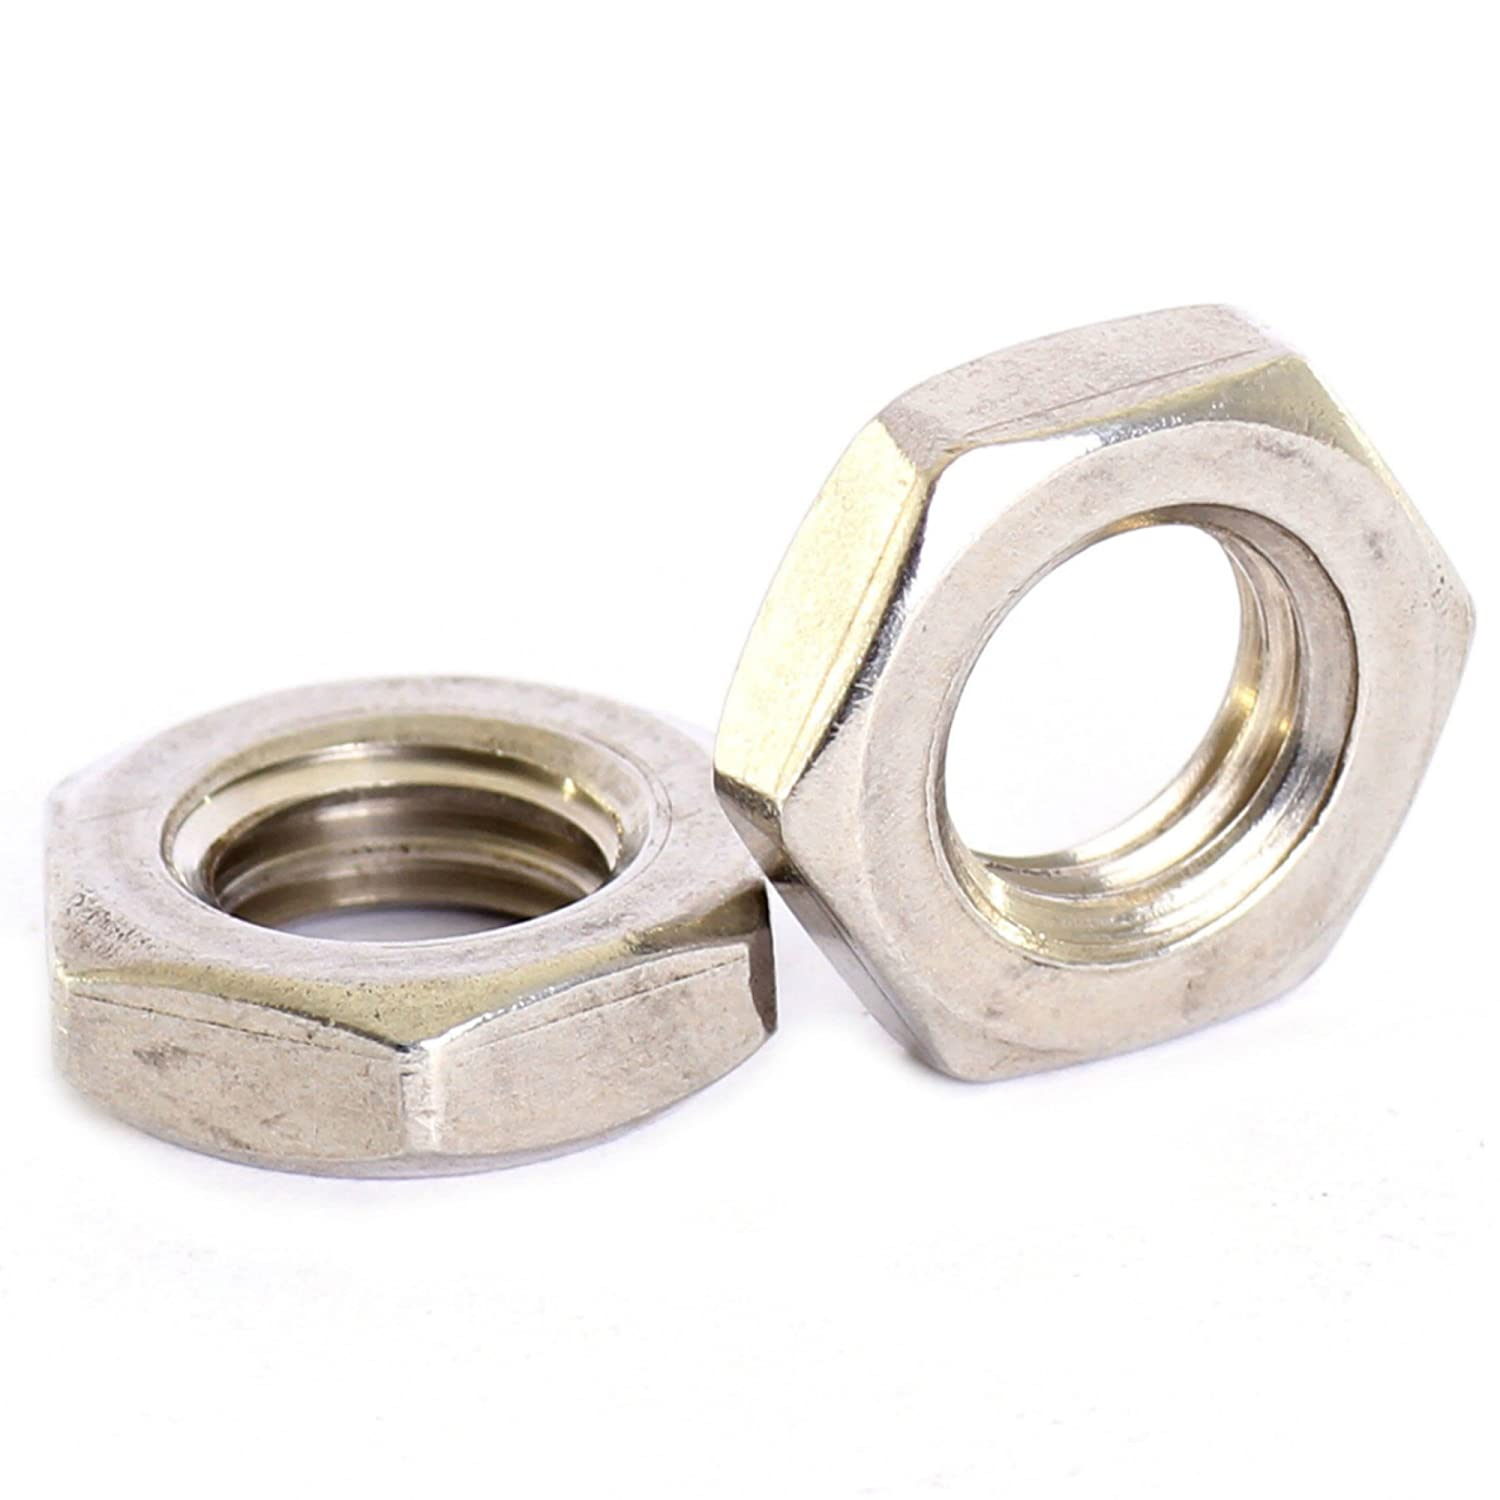 Bolt Base 12mm A2 Stainless Steel Fine Pitch Hexagon Half Lock Nuts Hex Thin Nut DIN 439 M12 X 1.0mm - 2